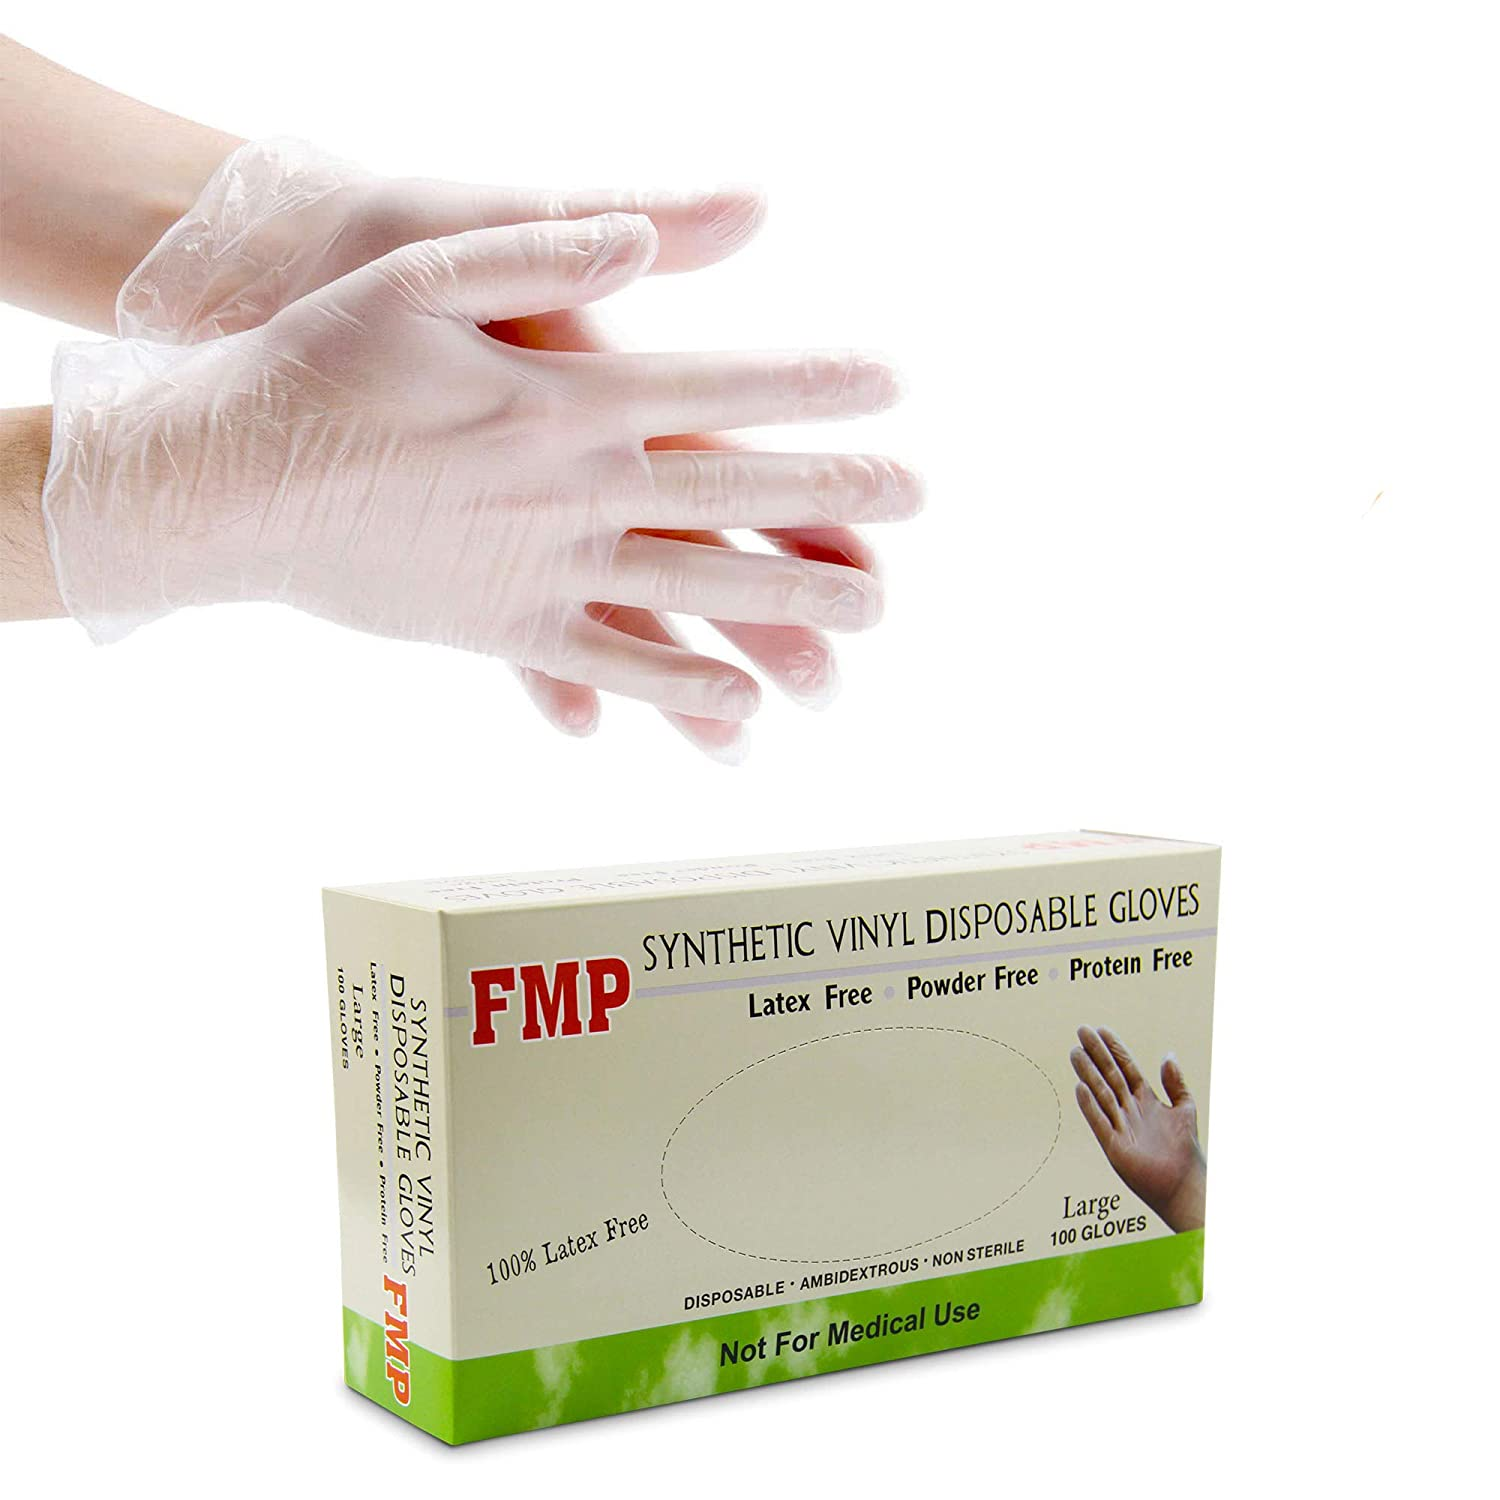 [100 Pack] Disposable Vinyl Gloves, Large Size, Non-Sterile, Powder Free, Smooth Touch, Food Service Grade 71VCOLKqqdL